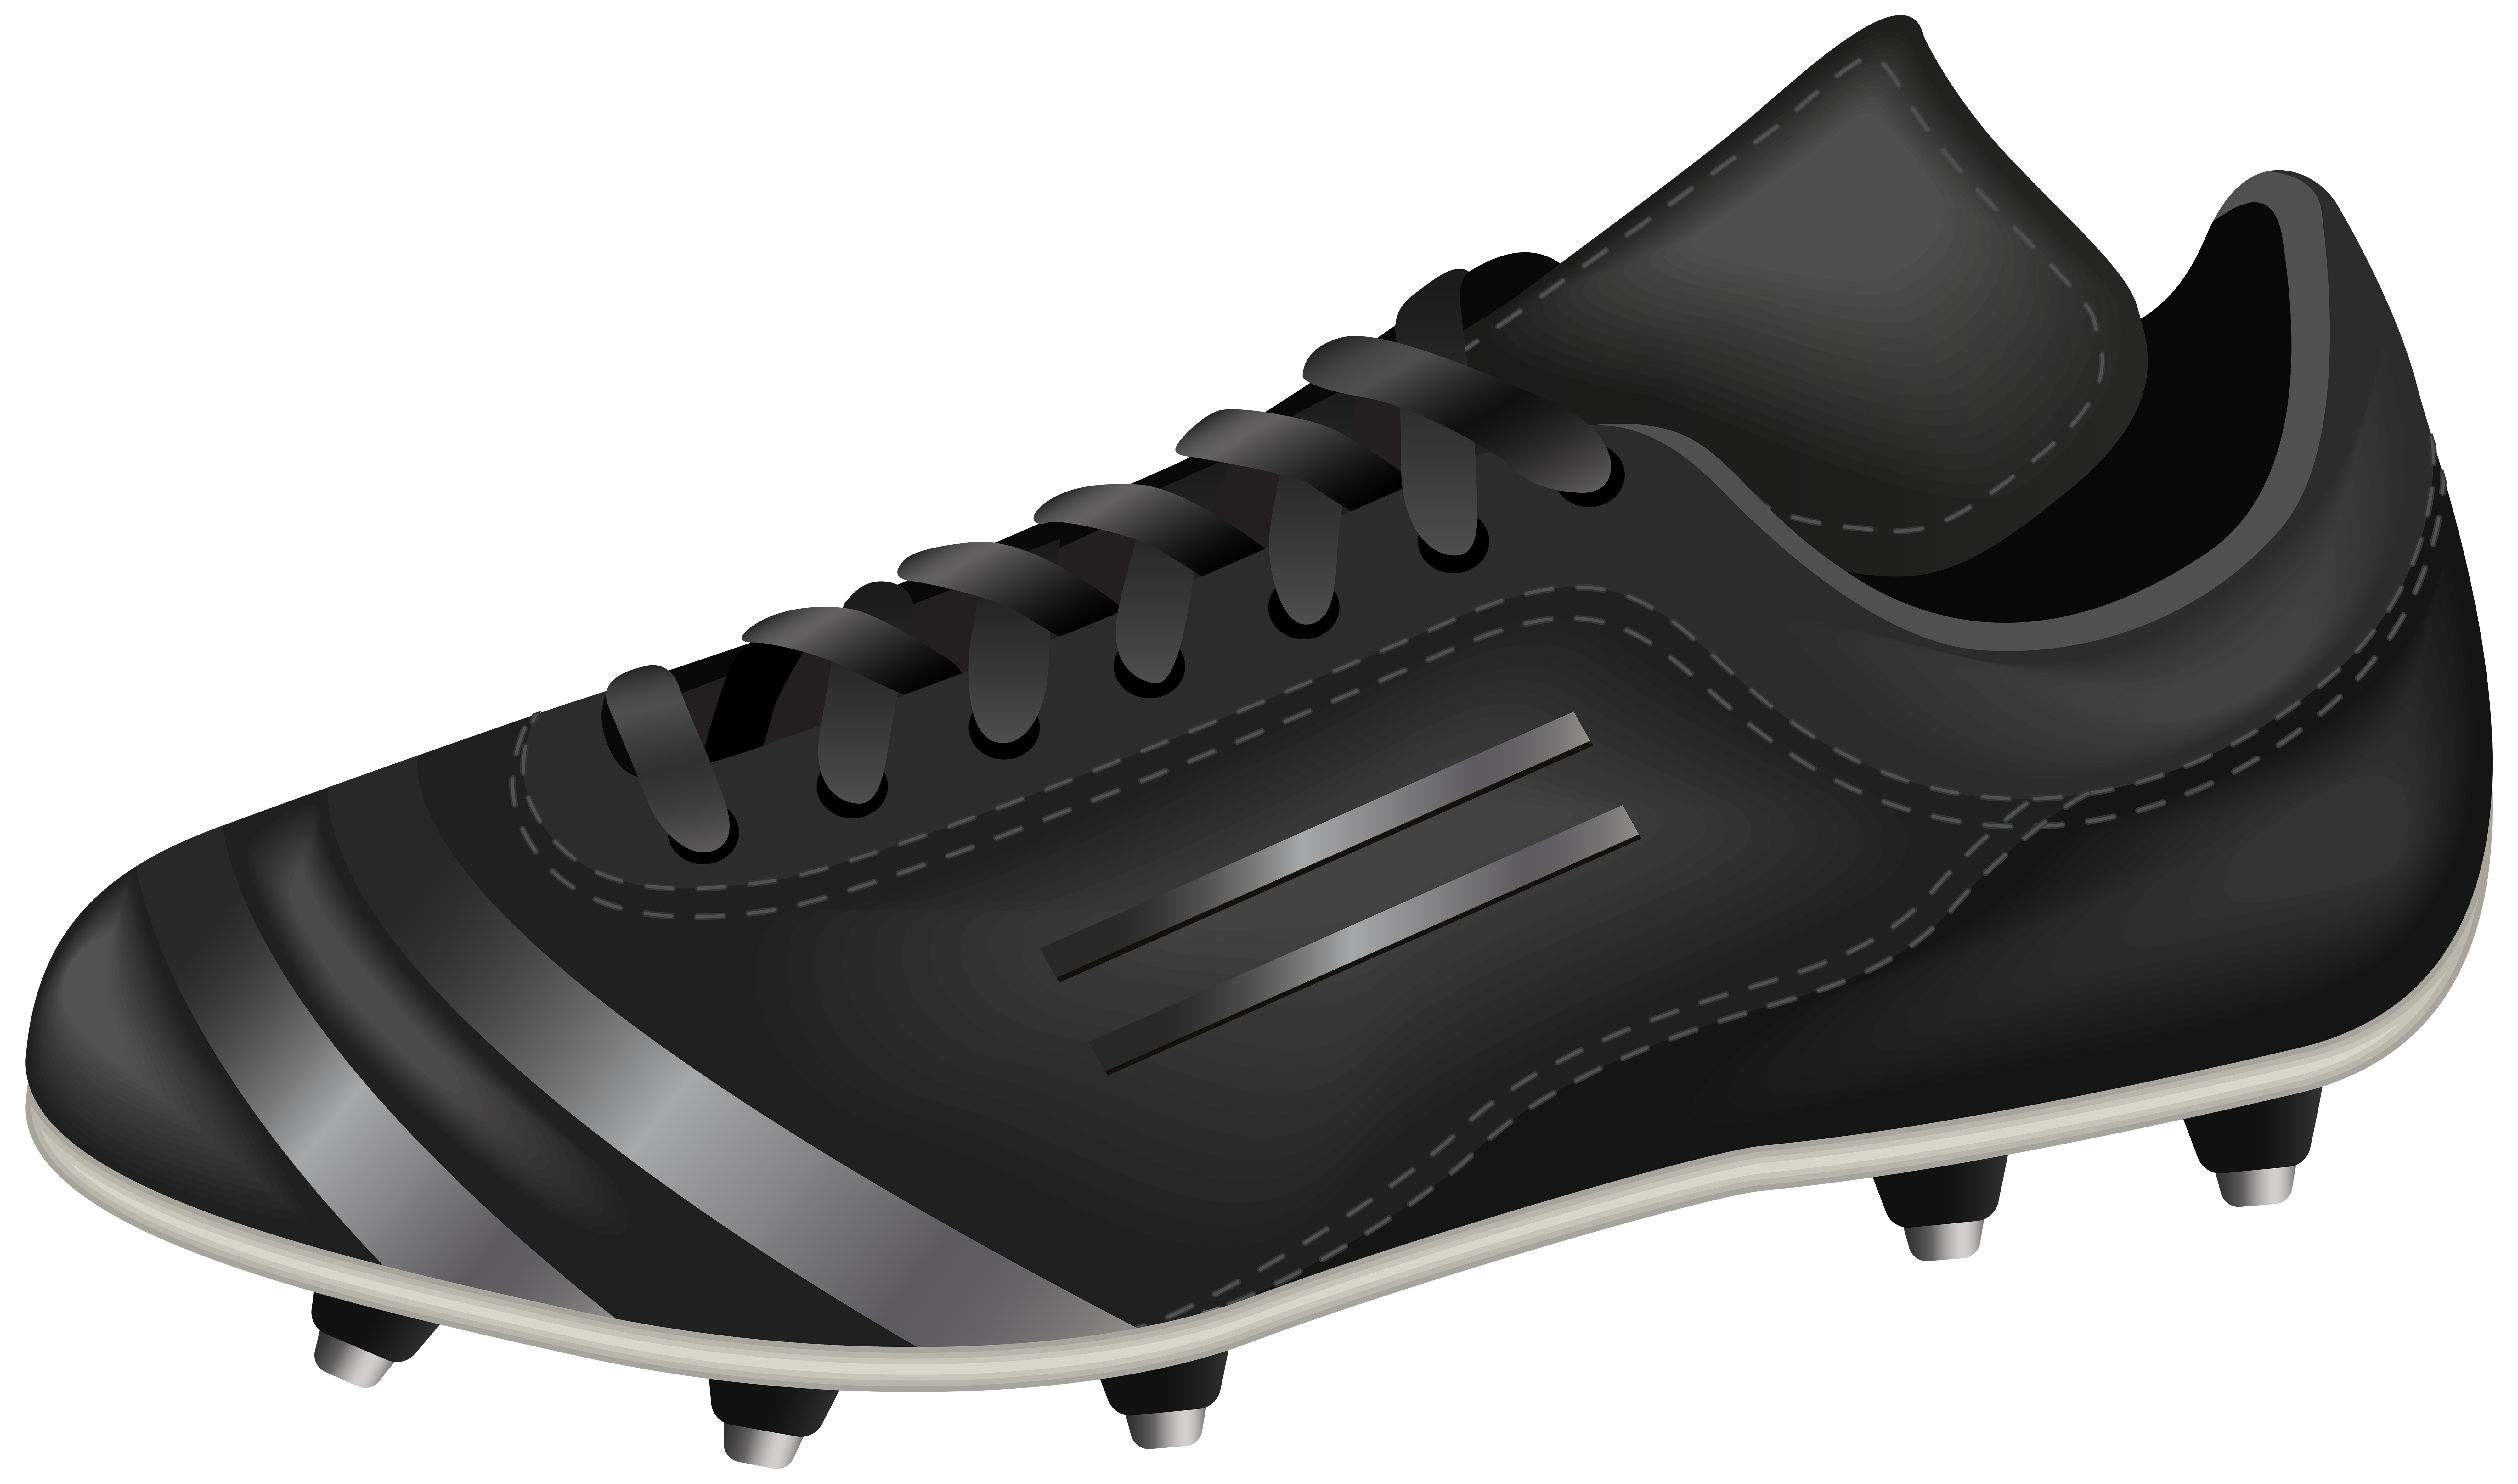 Football Boots PNG Clip Art Image.